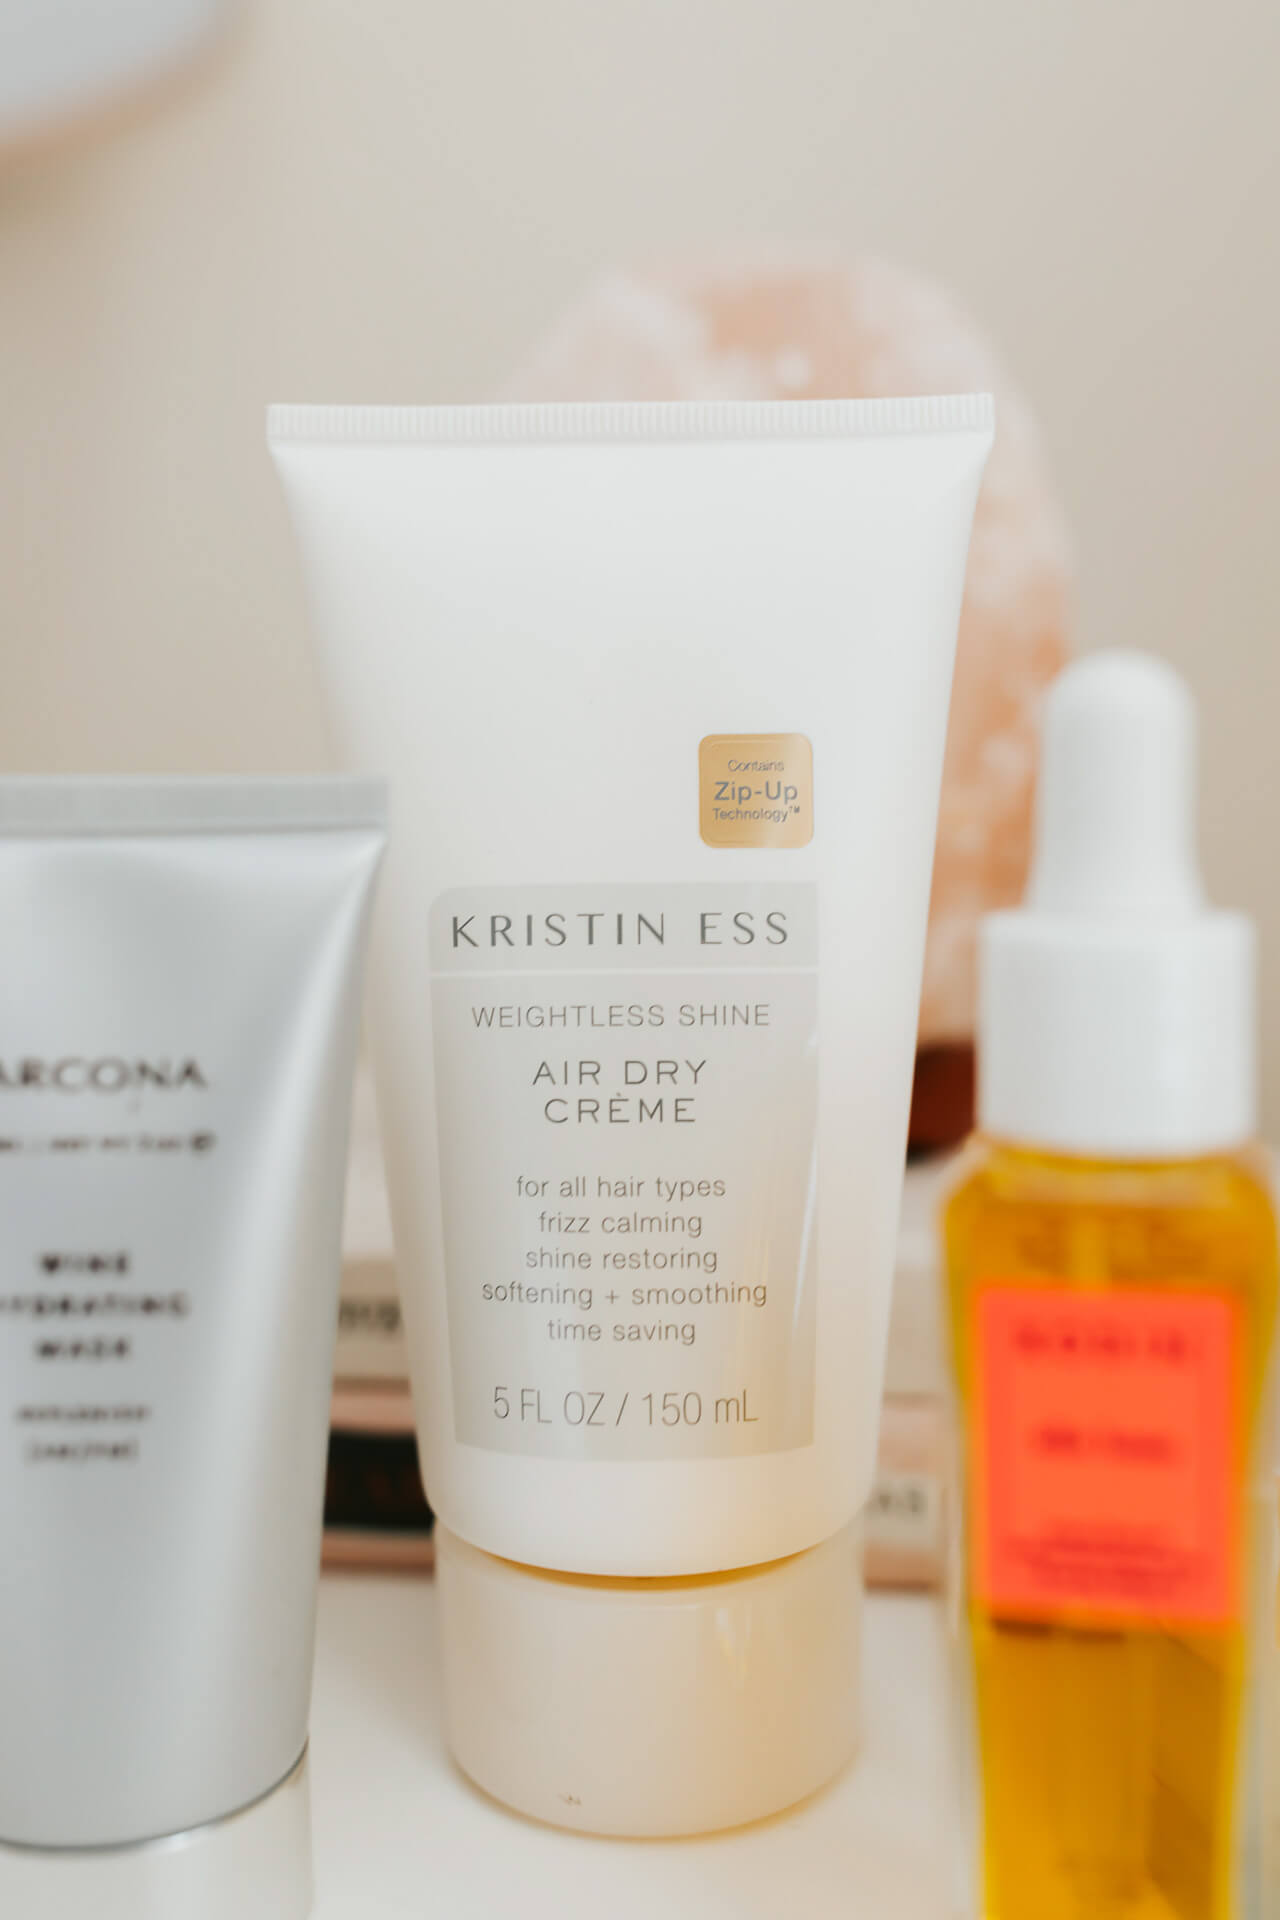 Kristin Ess Air Dry Creme for soft hair